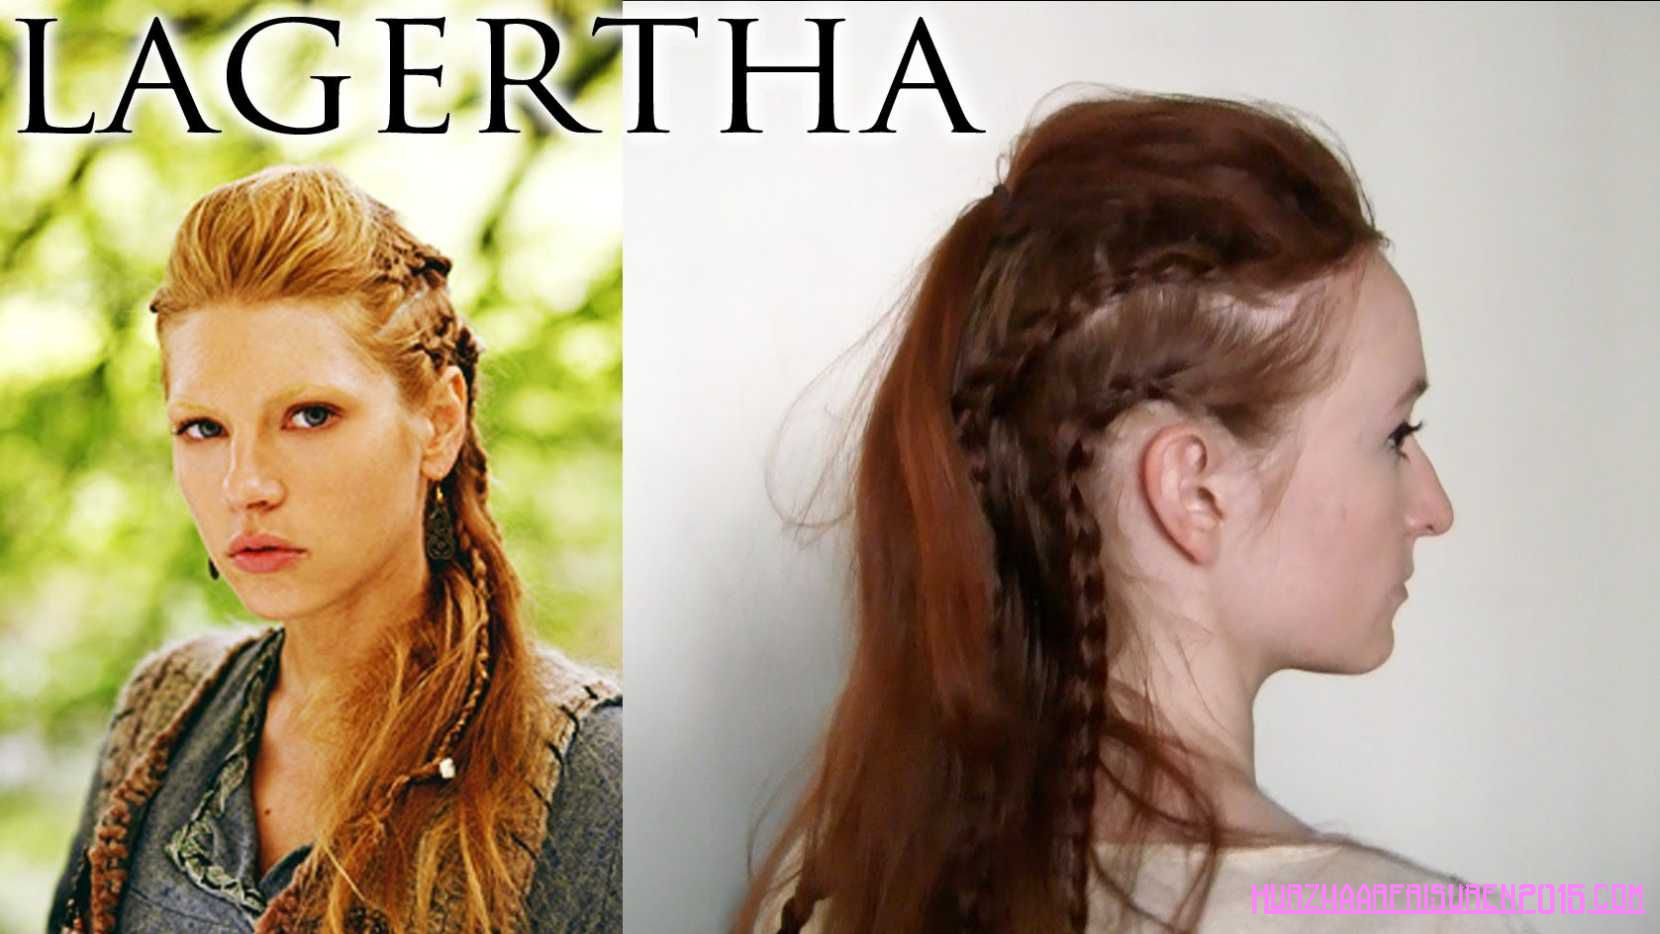 vikings zopf frisuren lagertha